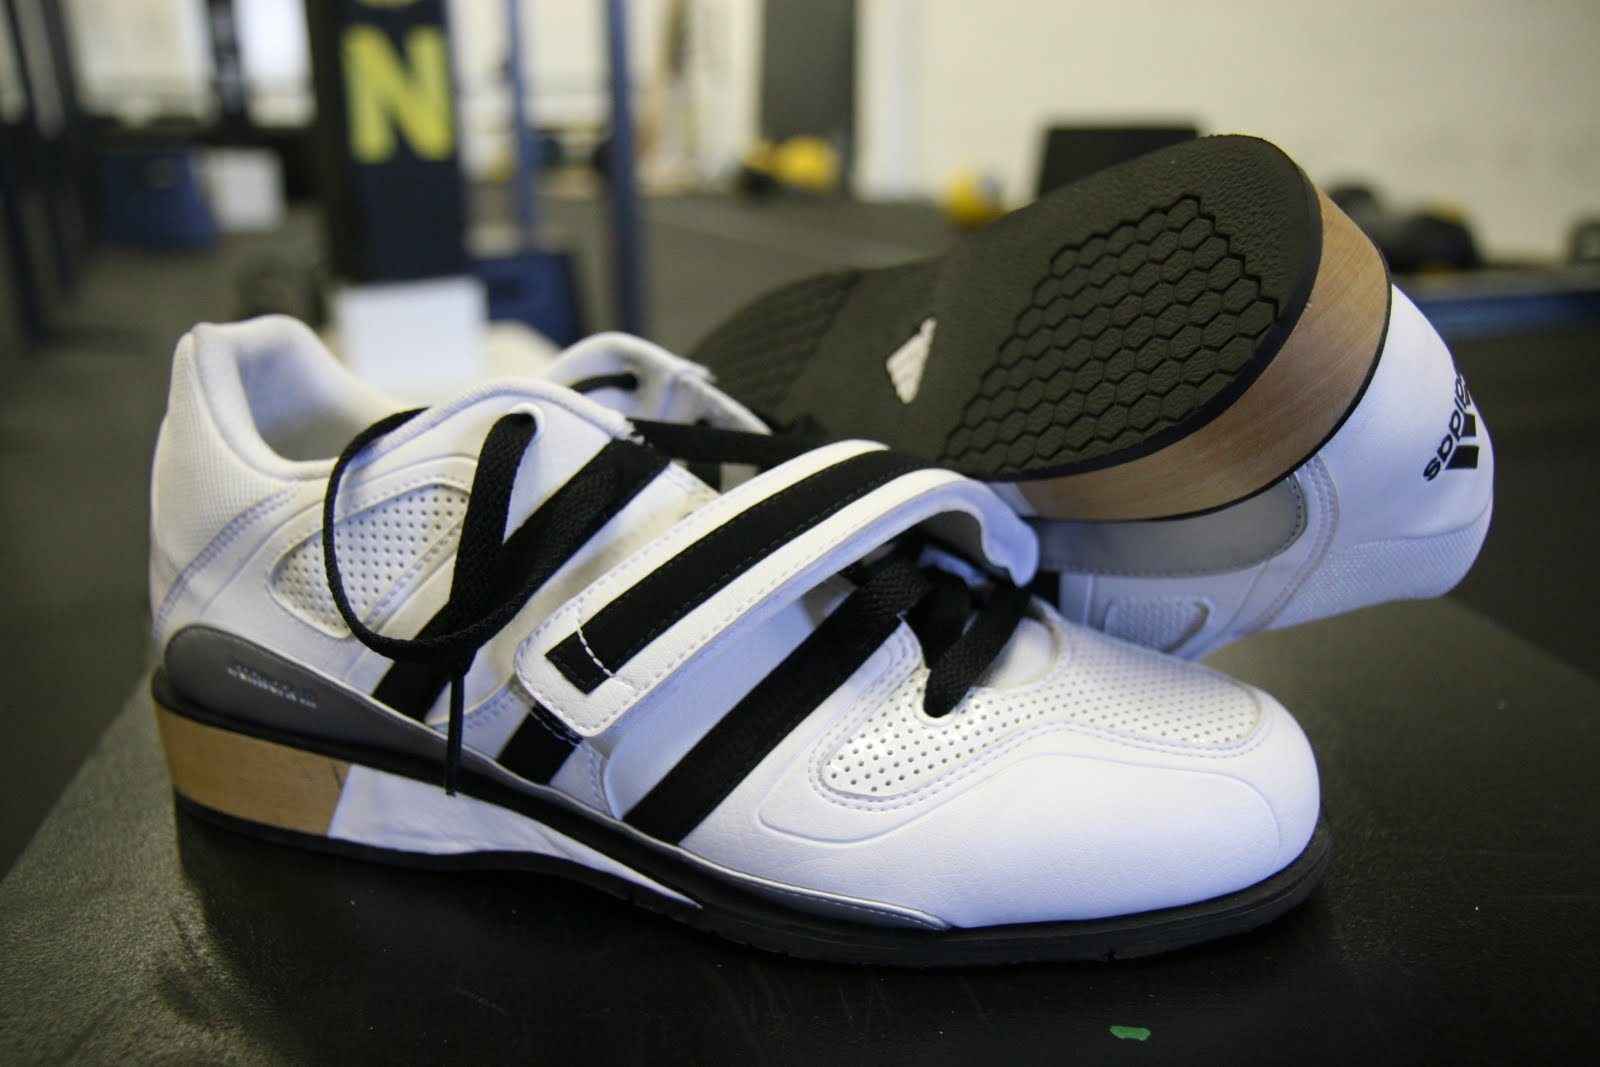 Adidas Oly Shoes